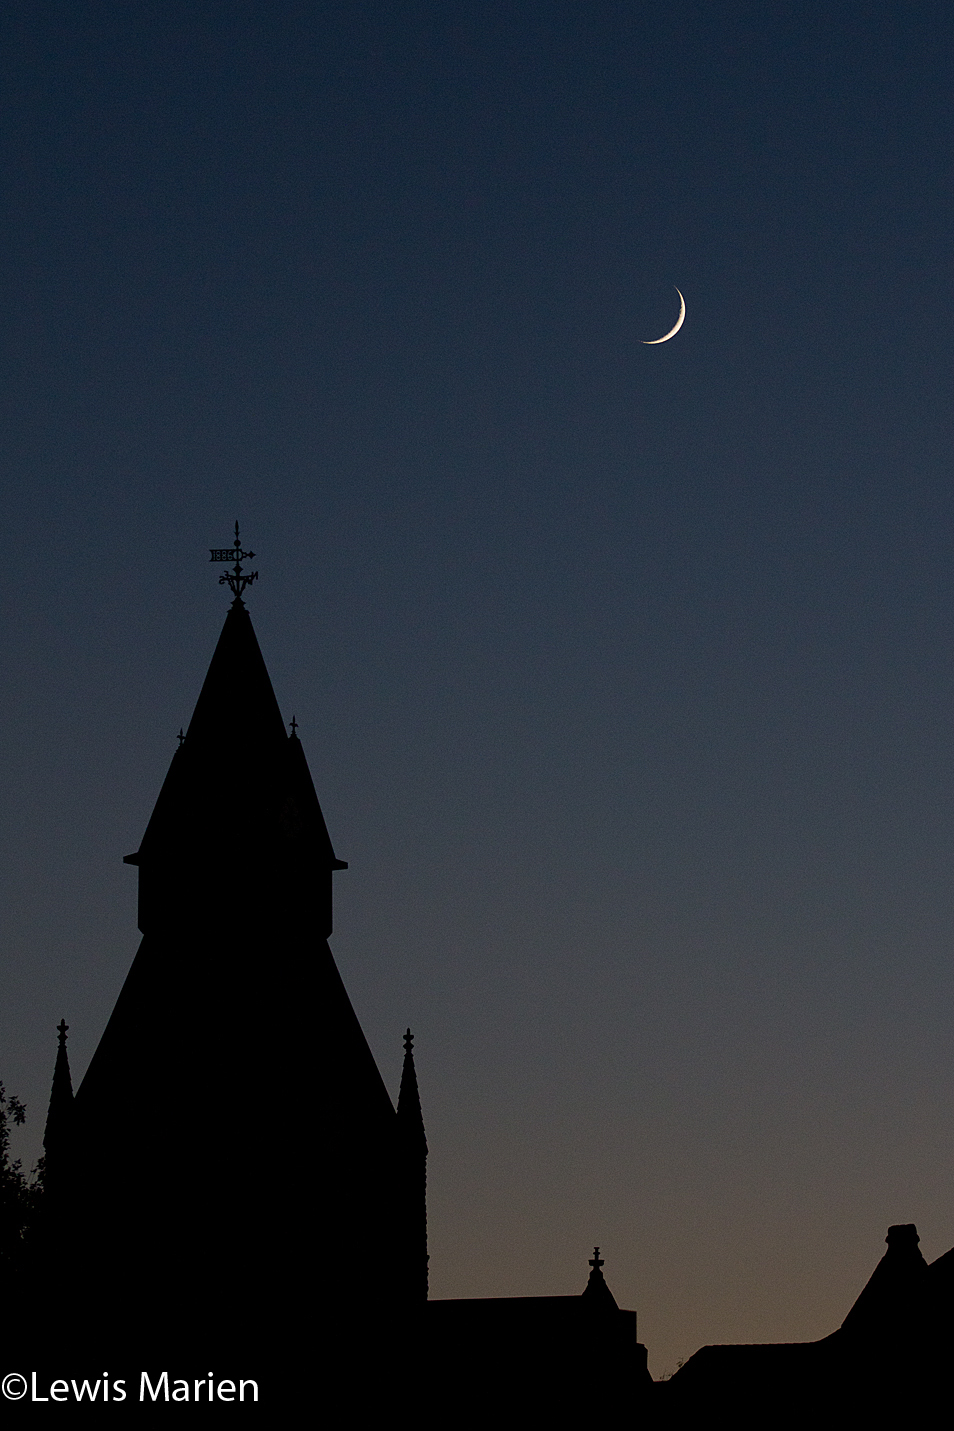 A crescent moon is seen over the Knox County Courthouse's clocktower in Galesburg, Ill., on Oct. 15.